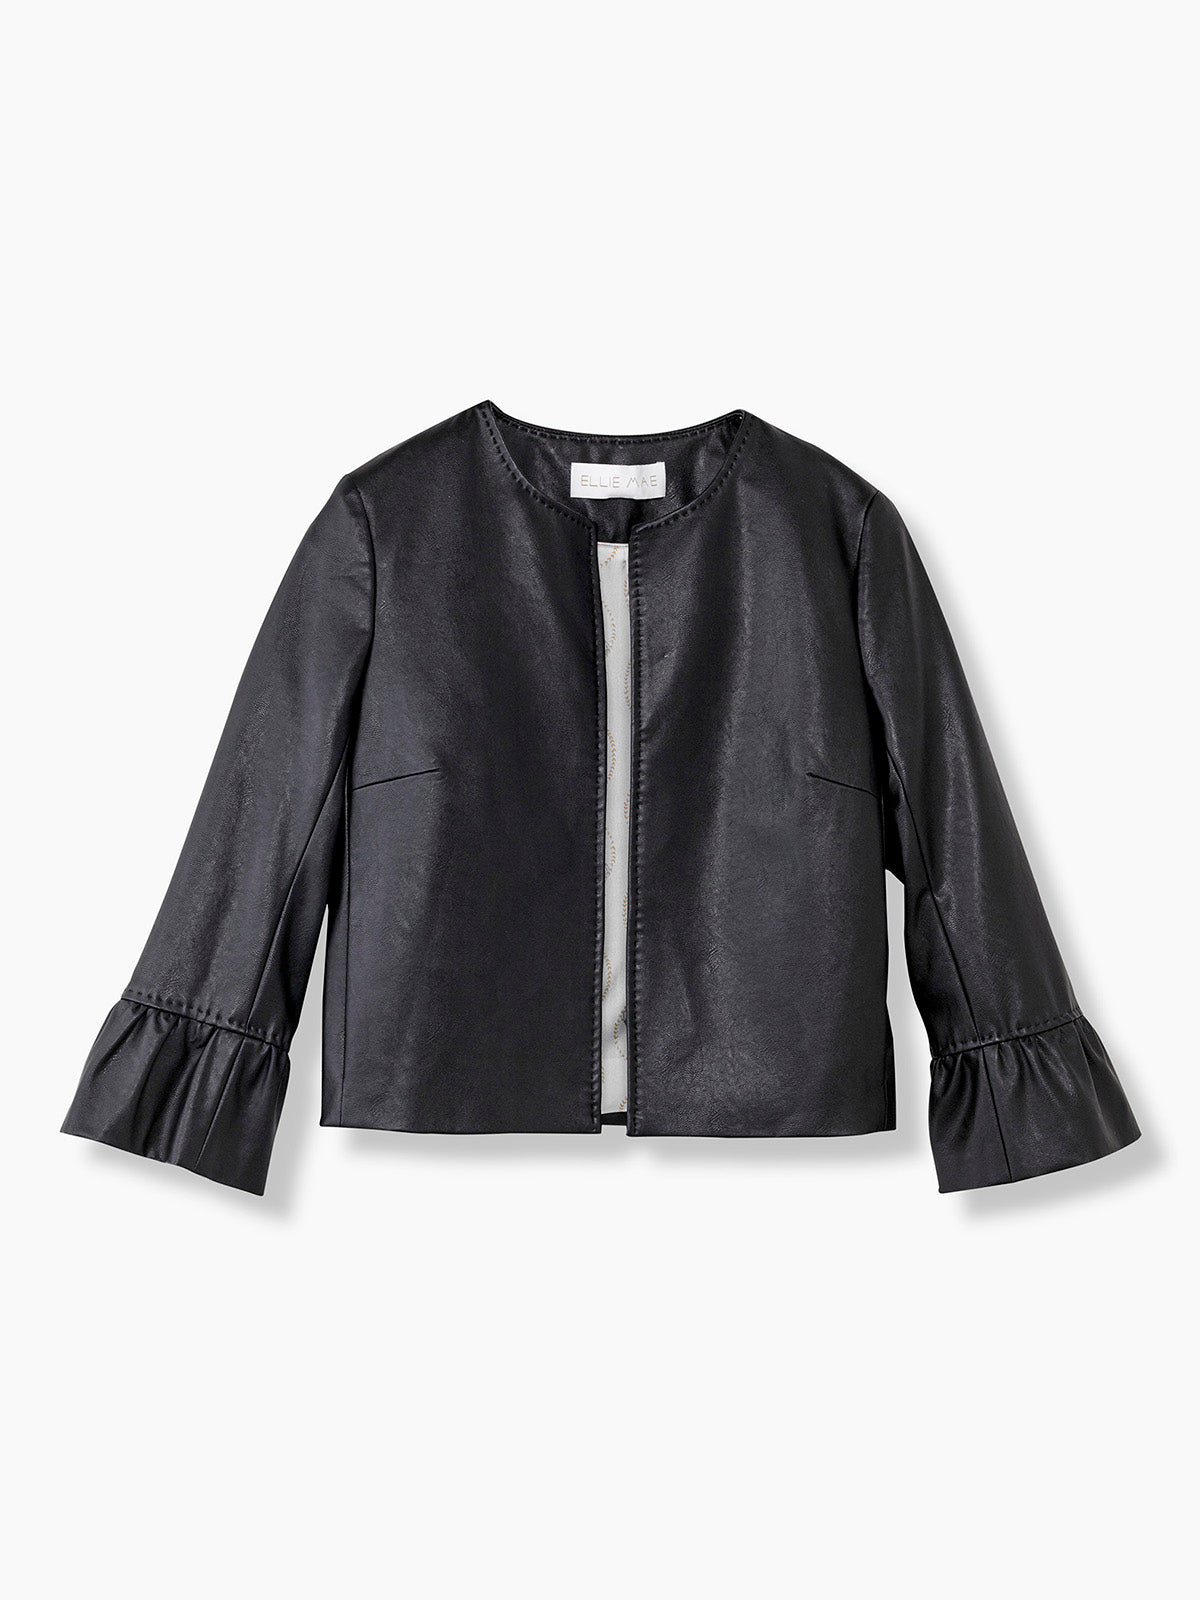 e3e7560d8a55 Spring Summer Faux Leather Jacket in Black for Ladies - DJ - Ellie Mae